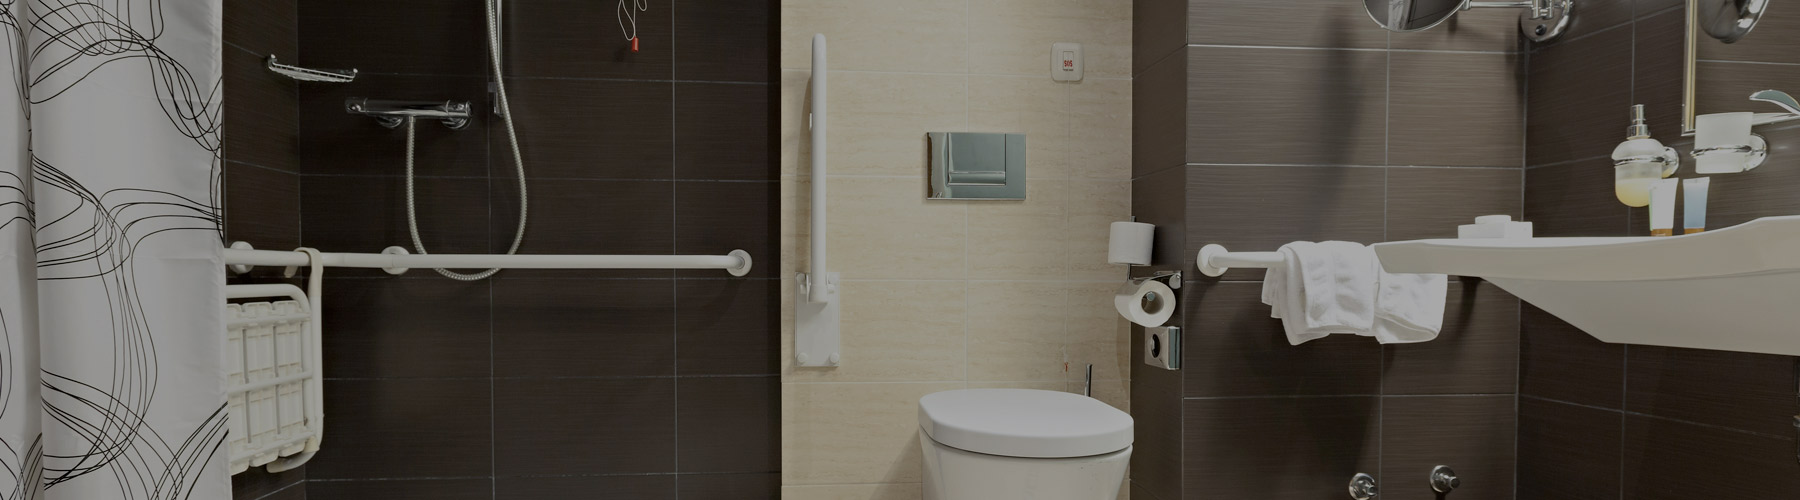 Ada compliant bathrooms myrtle beach bathroom remodeling - Bathroom vanities myrtle beach sc ...